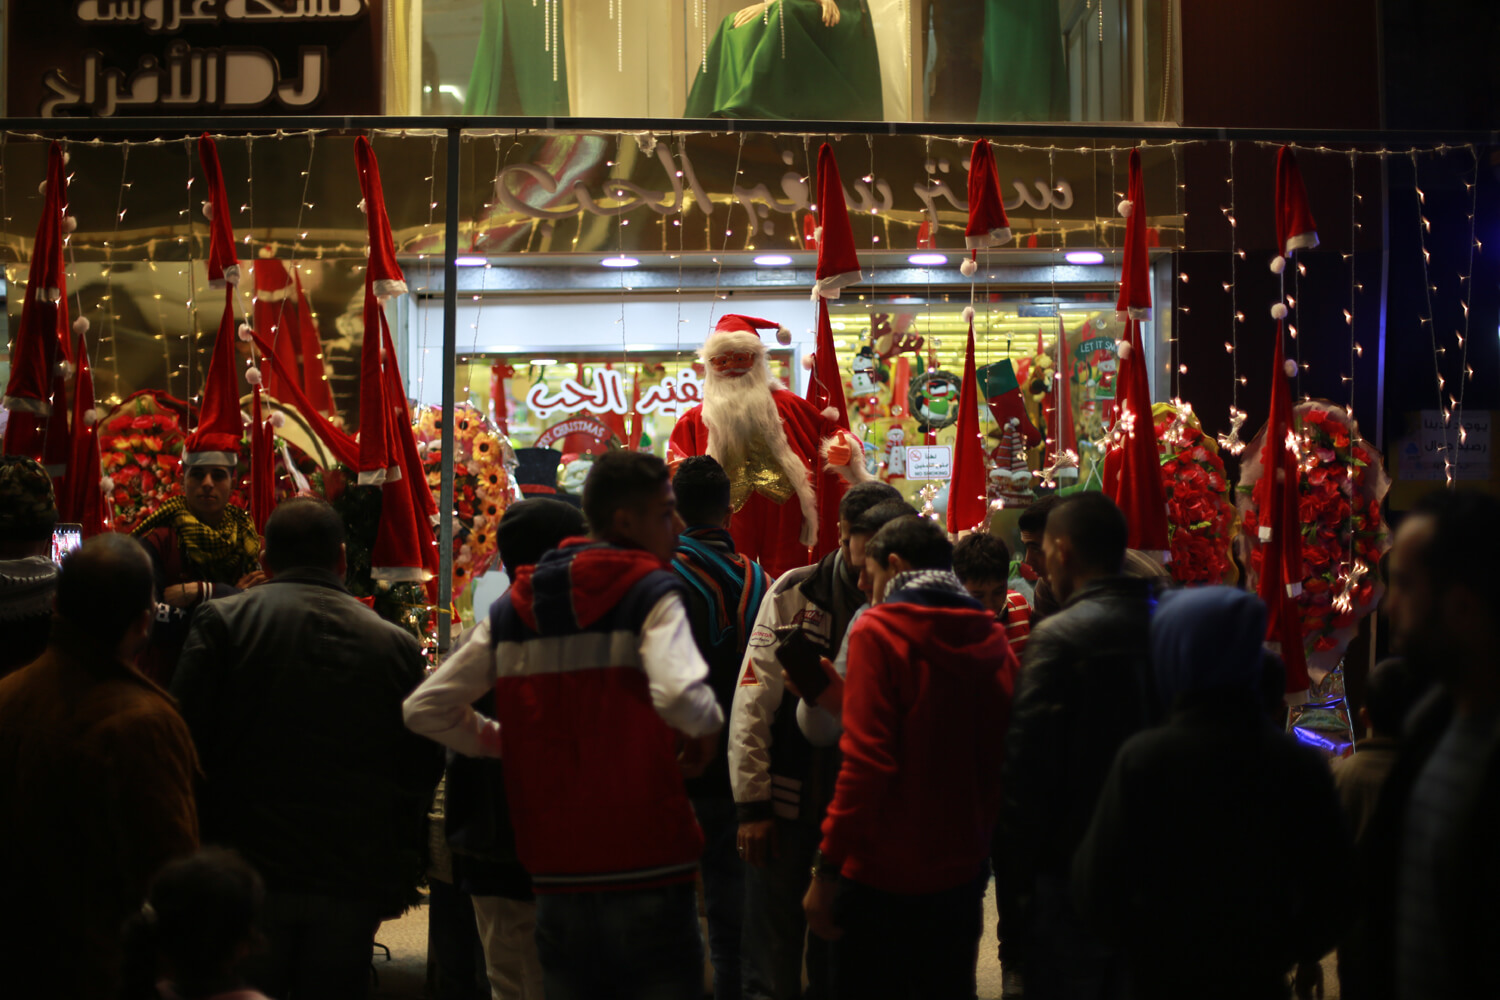 Citizens gathered in front of a special Christmas shops (Photo: Mohammed Asad)